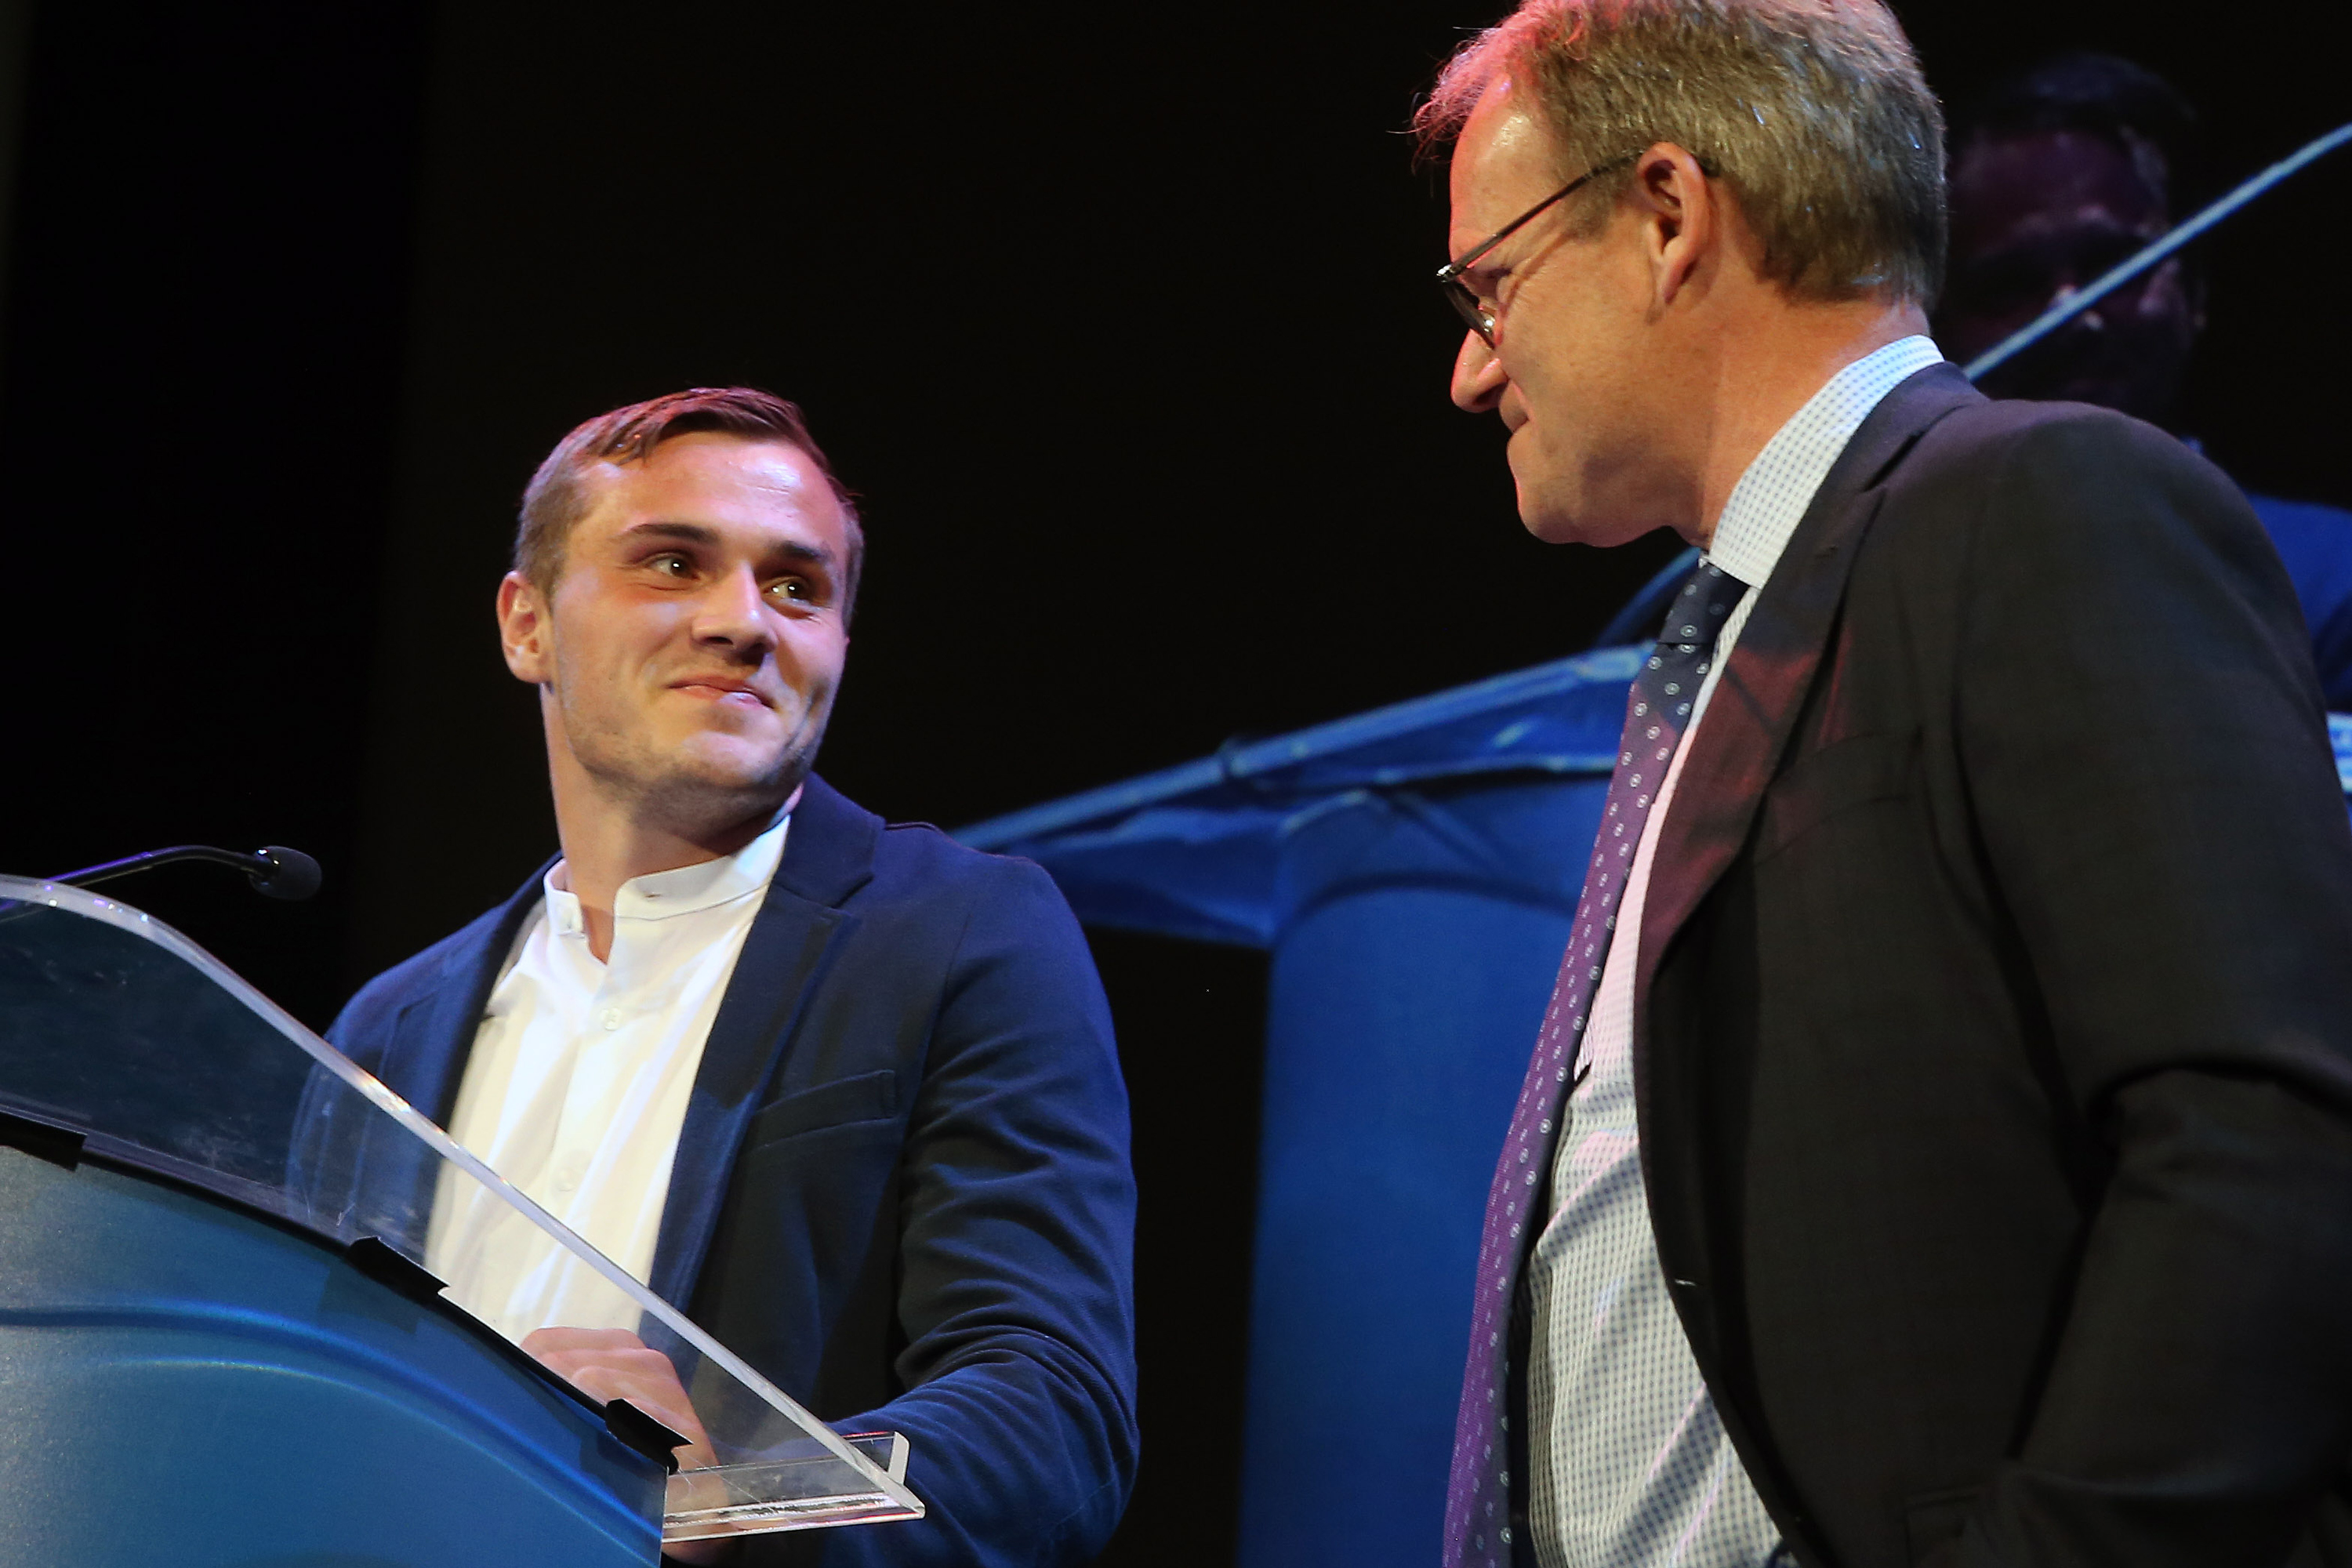 Sounders player Jordan Morris and head coach Brian Schmetzer accept the 2016 Sports Story of the Year Award for the Seattle Sounders during the MTRWestern 82nd Annual Sports Star of the Year Awards, Feb. 8, 2017, at the Paramount Theater. (GENNA MARTIN, s